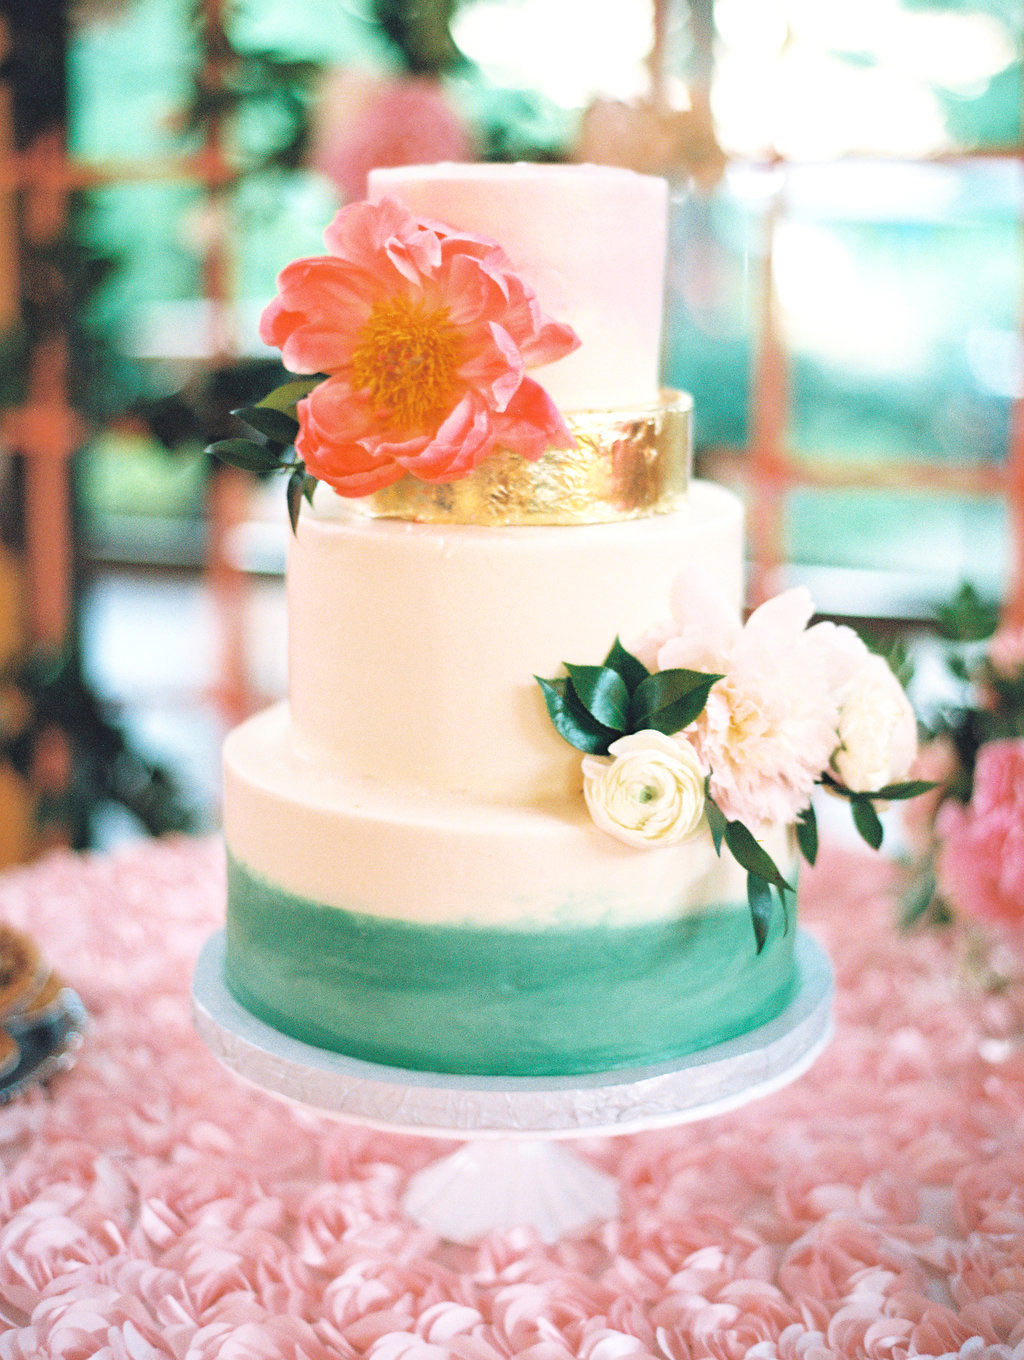 Watercolor bridal wedding cake with metallic gold layer and fresh flowers